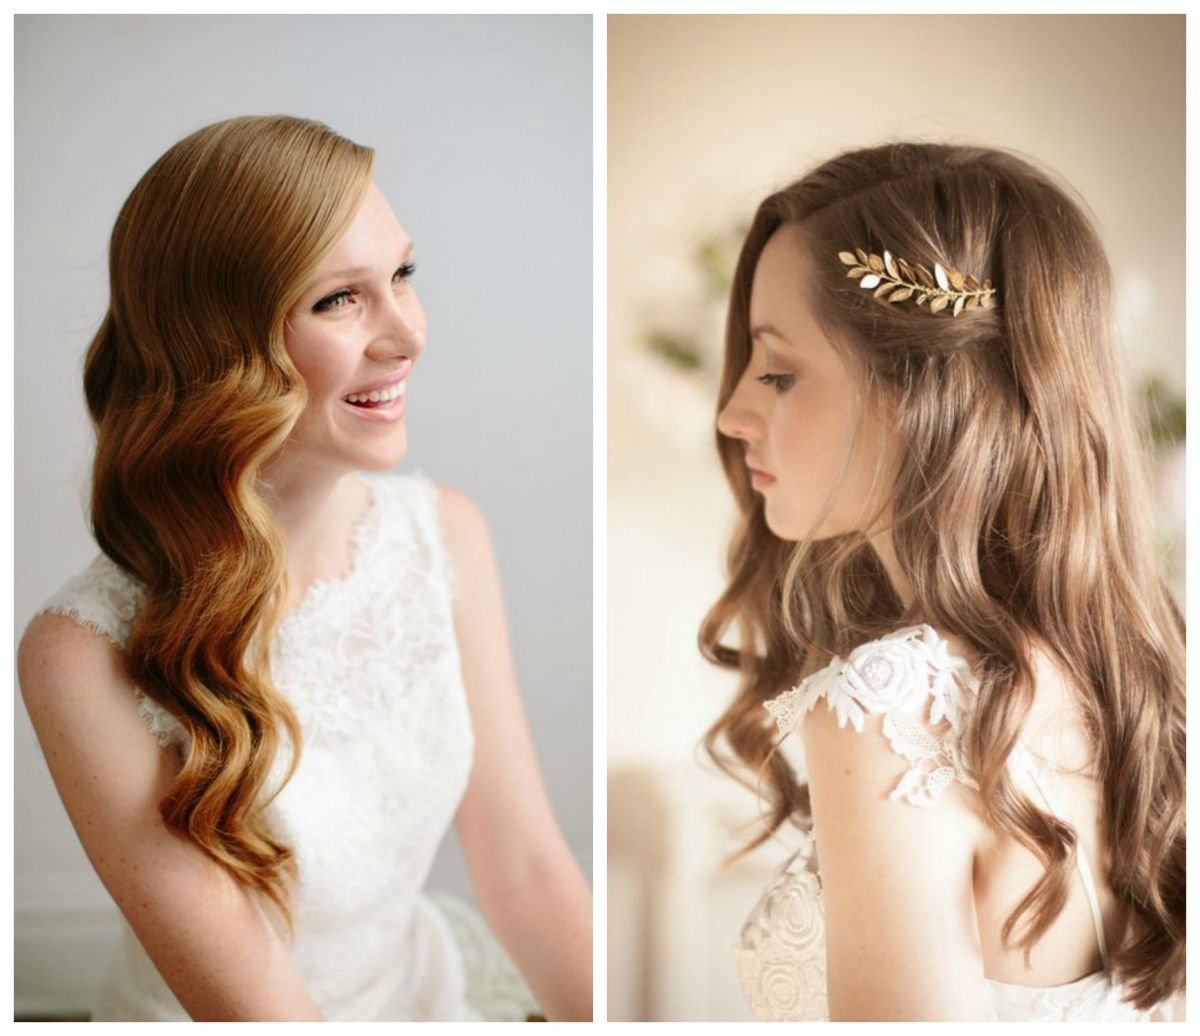 Outstanding Wedding Hairstyles Long Hair Image Collection - The ...